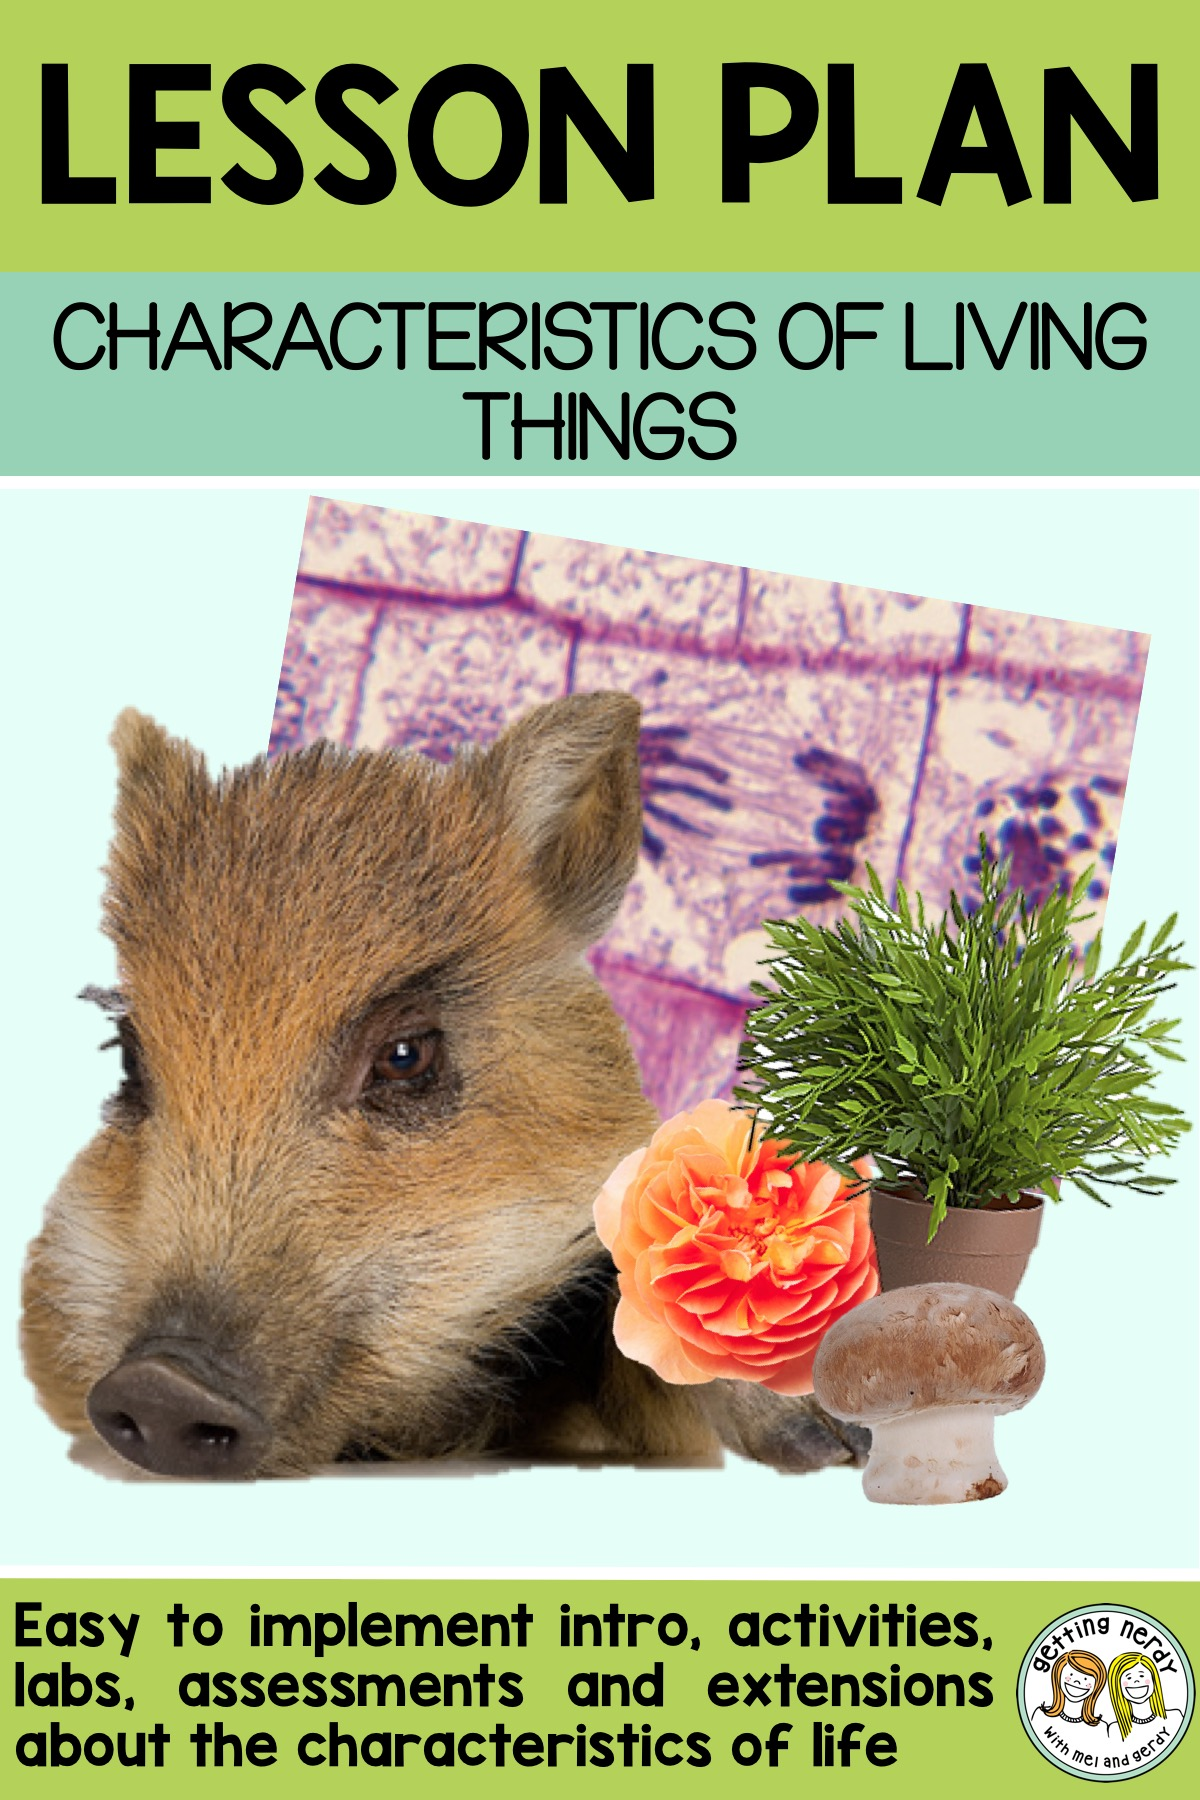 Lesson Plan: Needs and Characteristics of Living Things